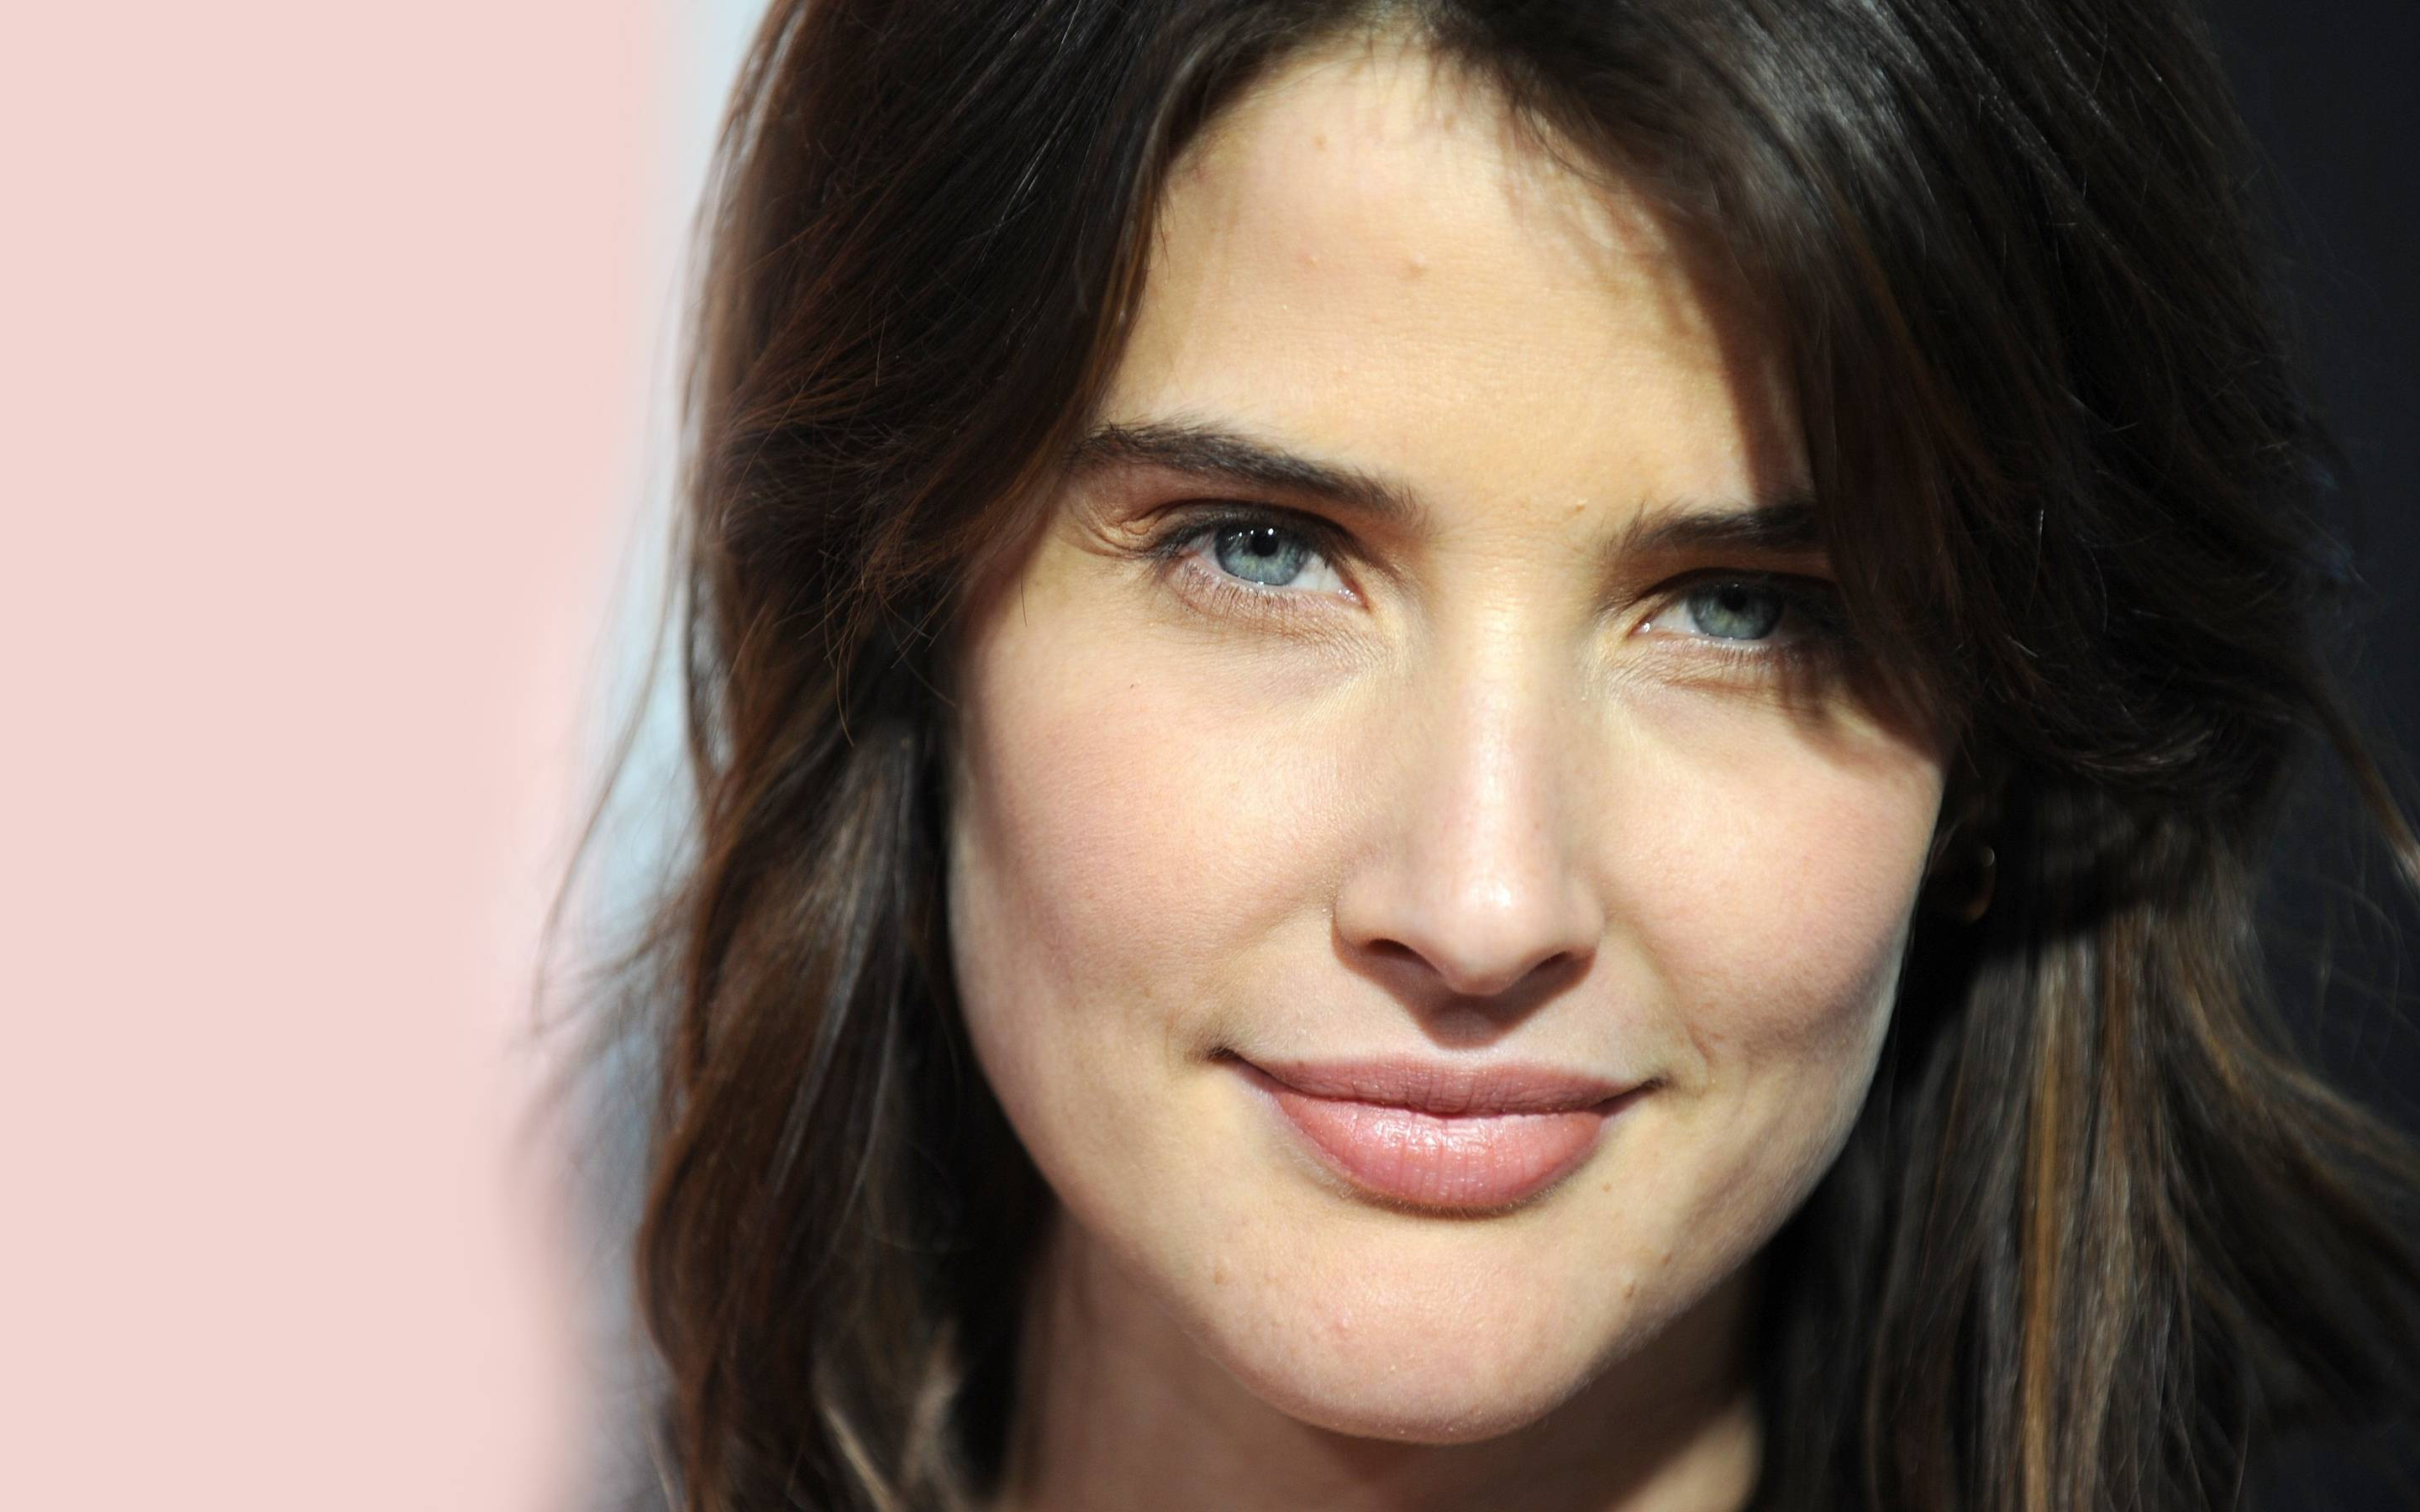 cobie smulders wallpapers - photo #18